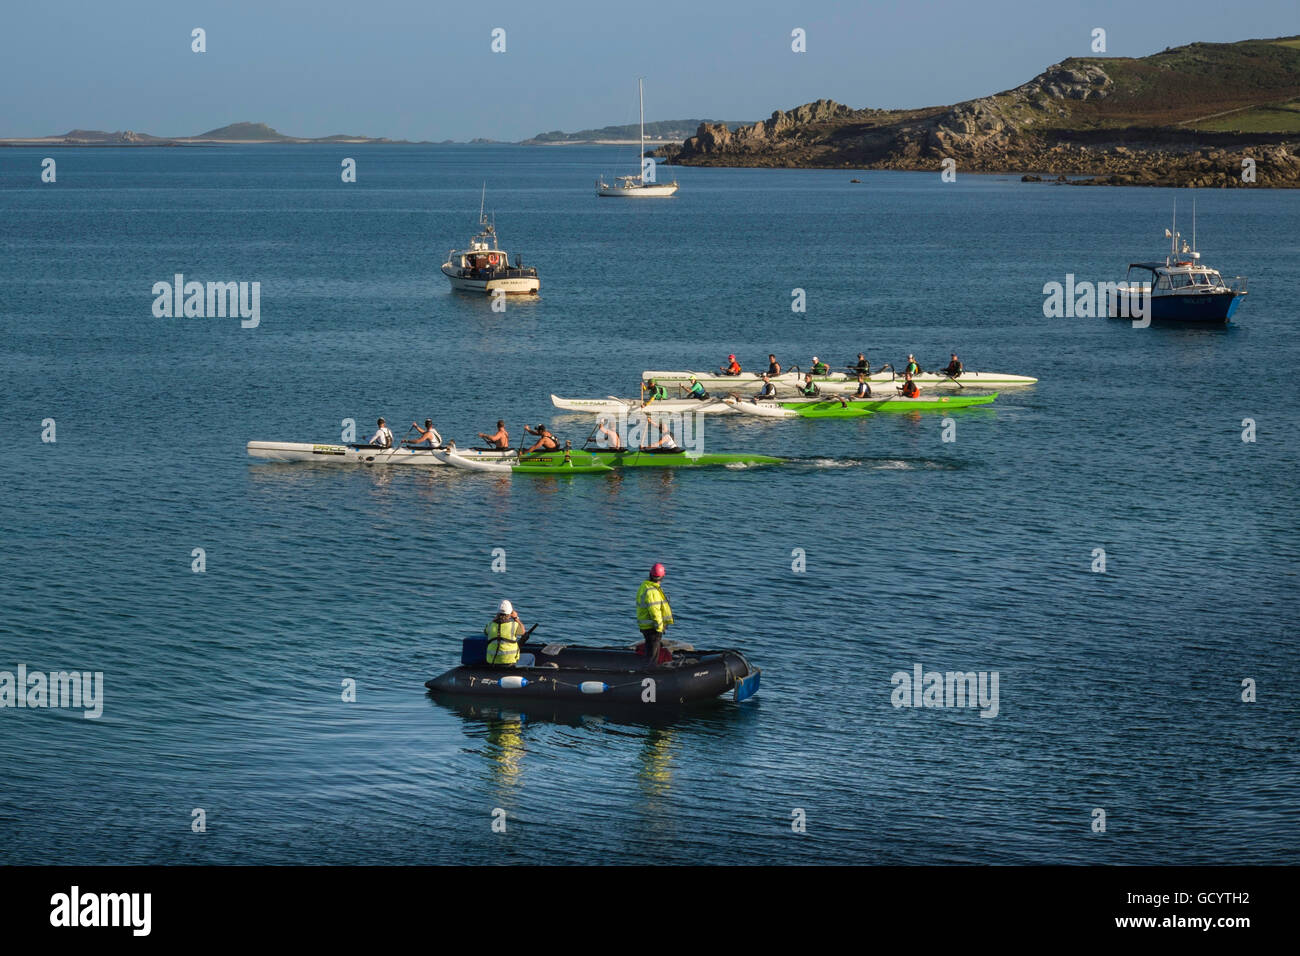 Start of the challenging Celtic Crossing outriggers race from St Mary's Scilly Isles to Sennen, Cornwall, UK - Stock Image